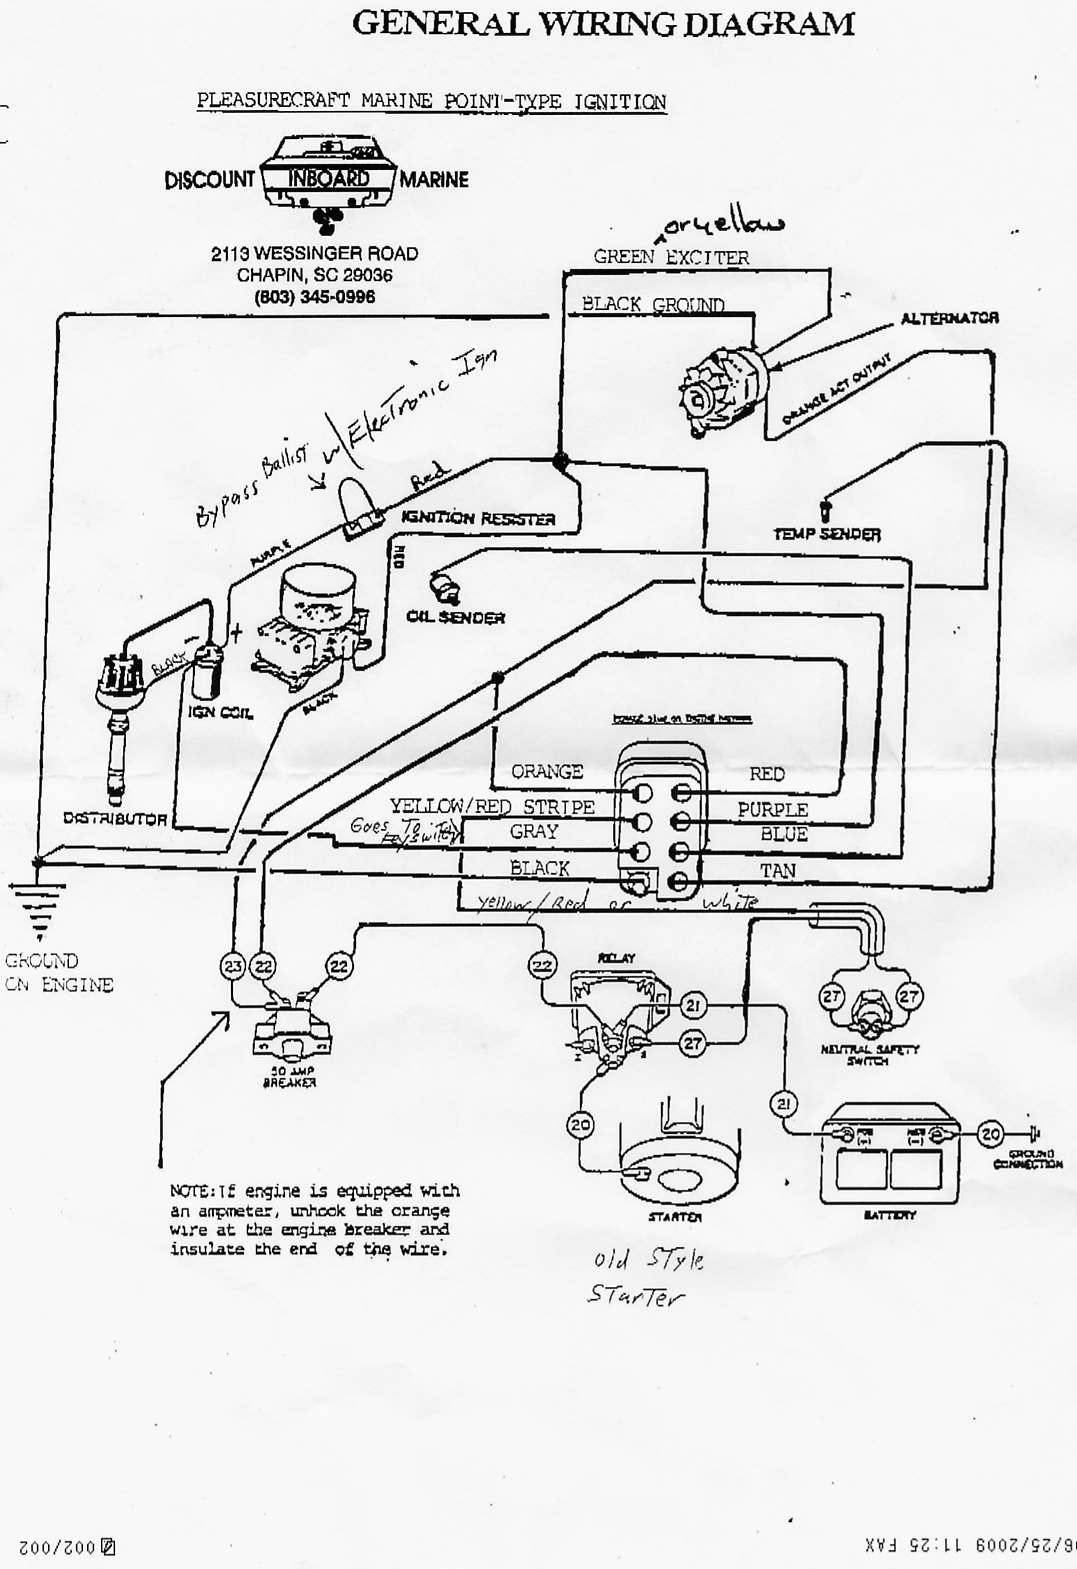 [FD_8258] Electra Craft Boat Wiring Diagram For Wiring Diagram